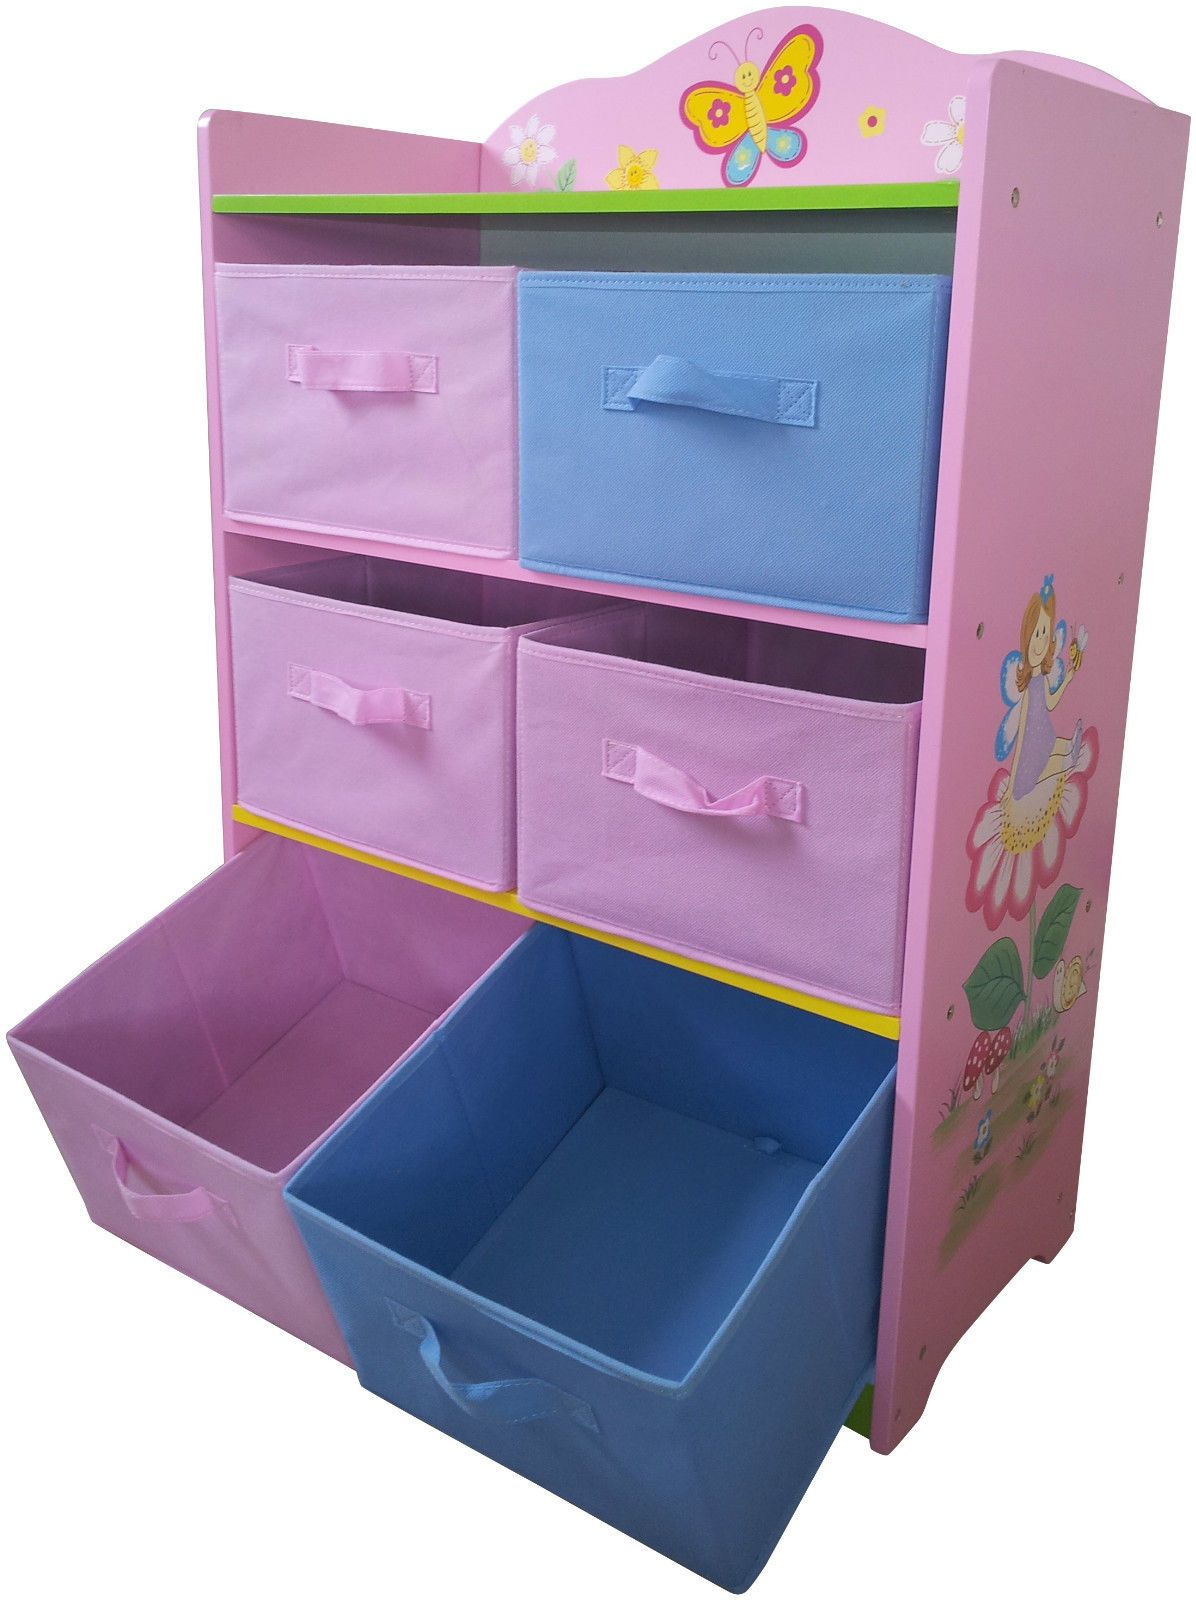 Good Http://www.ebay.co.uk/itm/LIBERTY HOUSE TOYS FAIRY FURNITURE  SET KIDS NURSERY PLAYROOM BEDROOM /321763889961?ptu003dLH_DefaultDomain_3